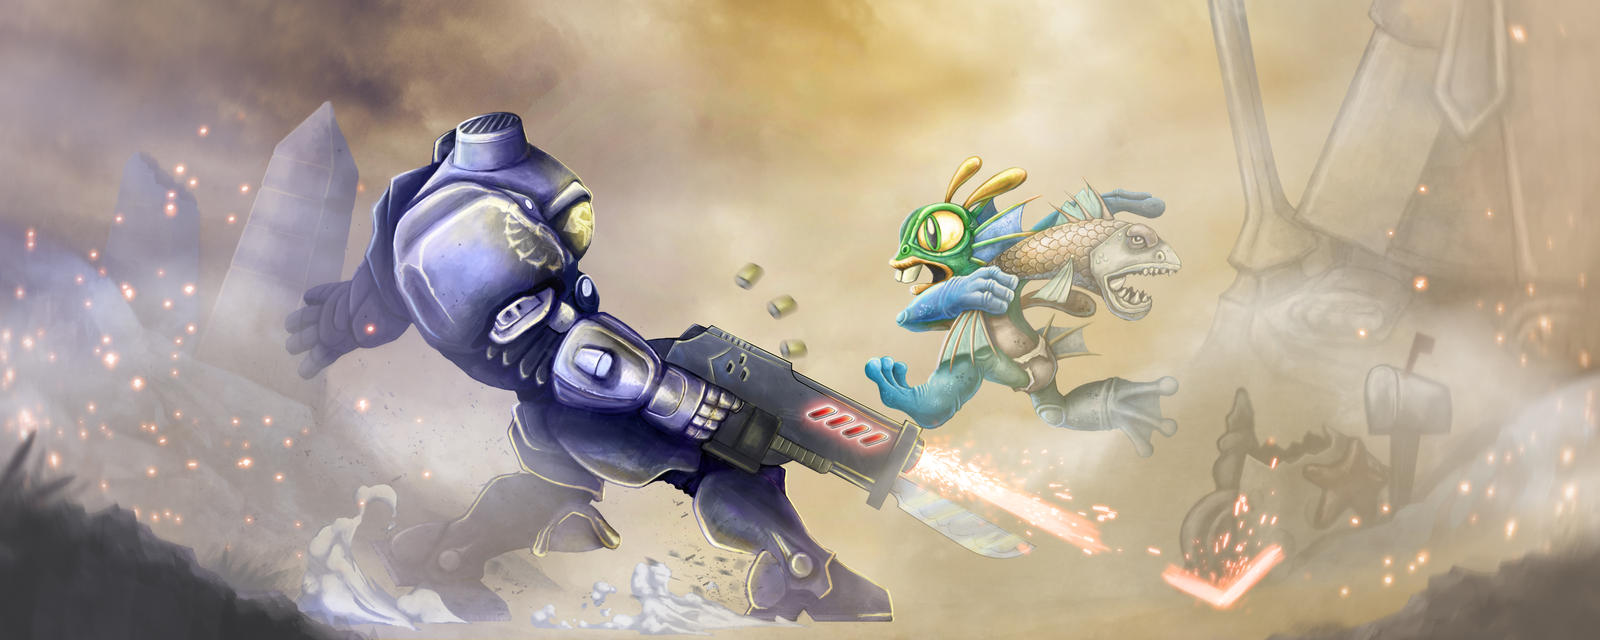 Blizzard Contest 2015 - Heroes of the Storm by ammerseearts